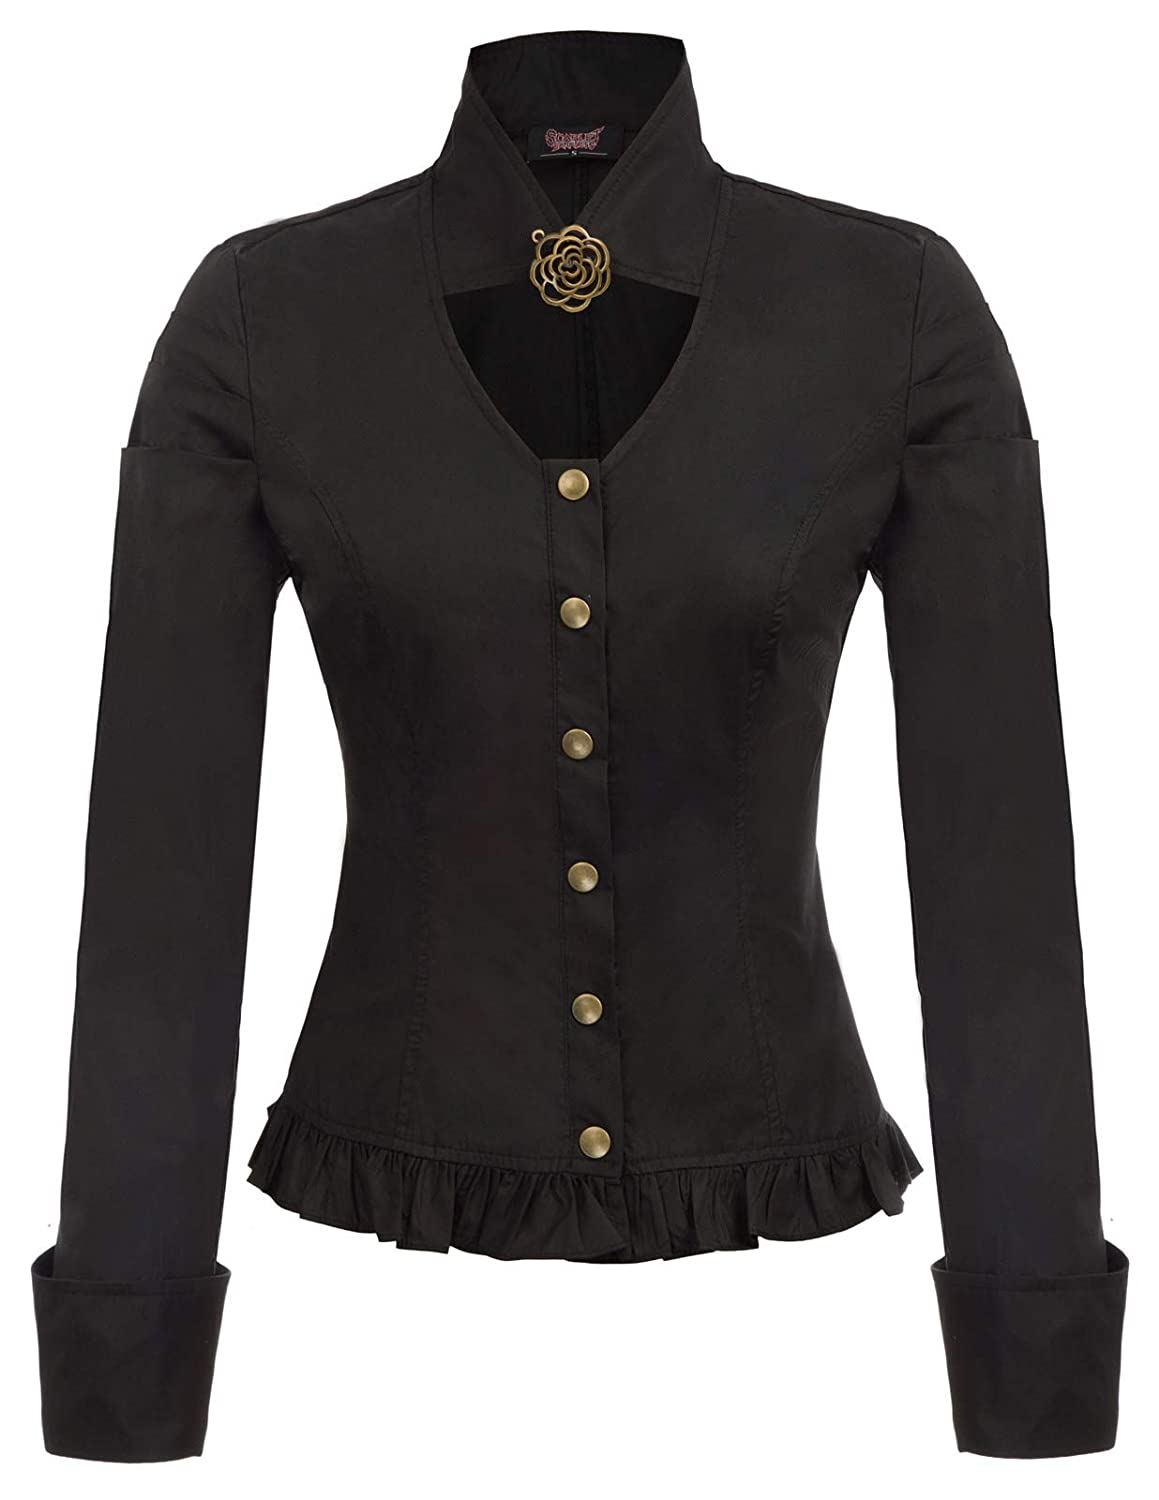 Victorian Clothing, Costumes & 1800s Fashion Women Steampunk Victorian Tops Stand Collar Button Placket Brooch Blouse S-2XL $27.99 AT vintagedancer.com